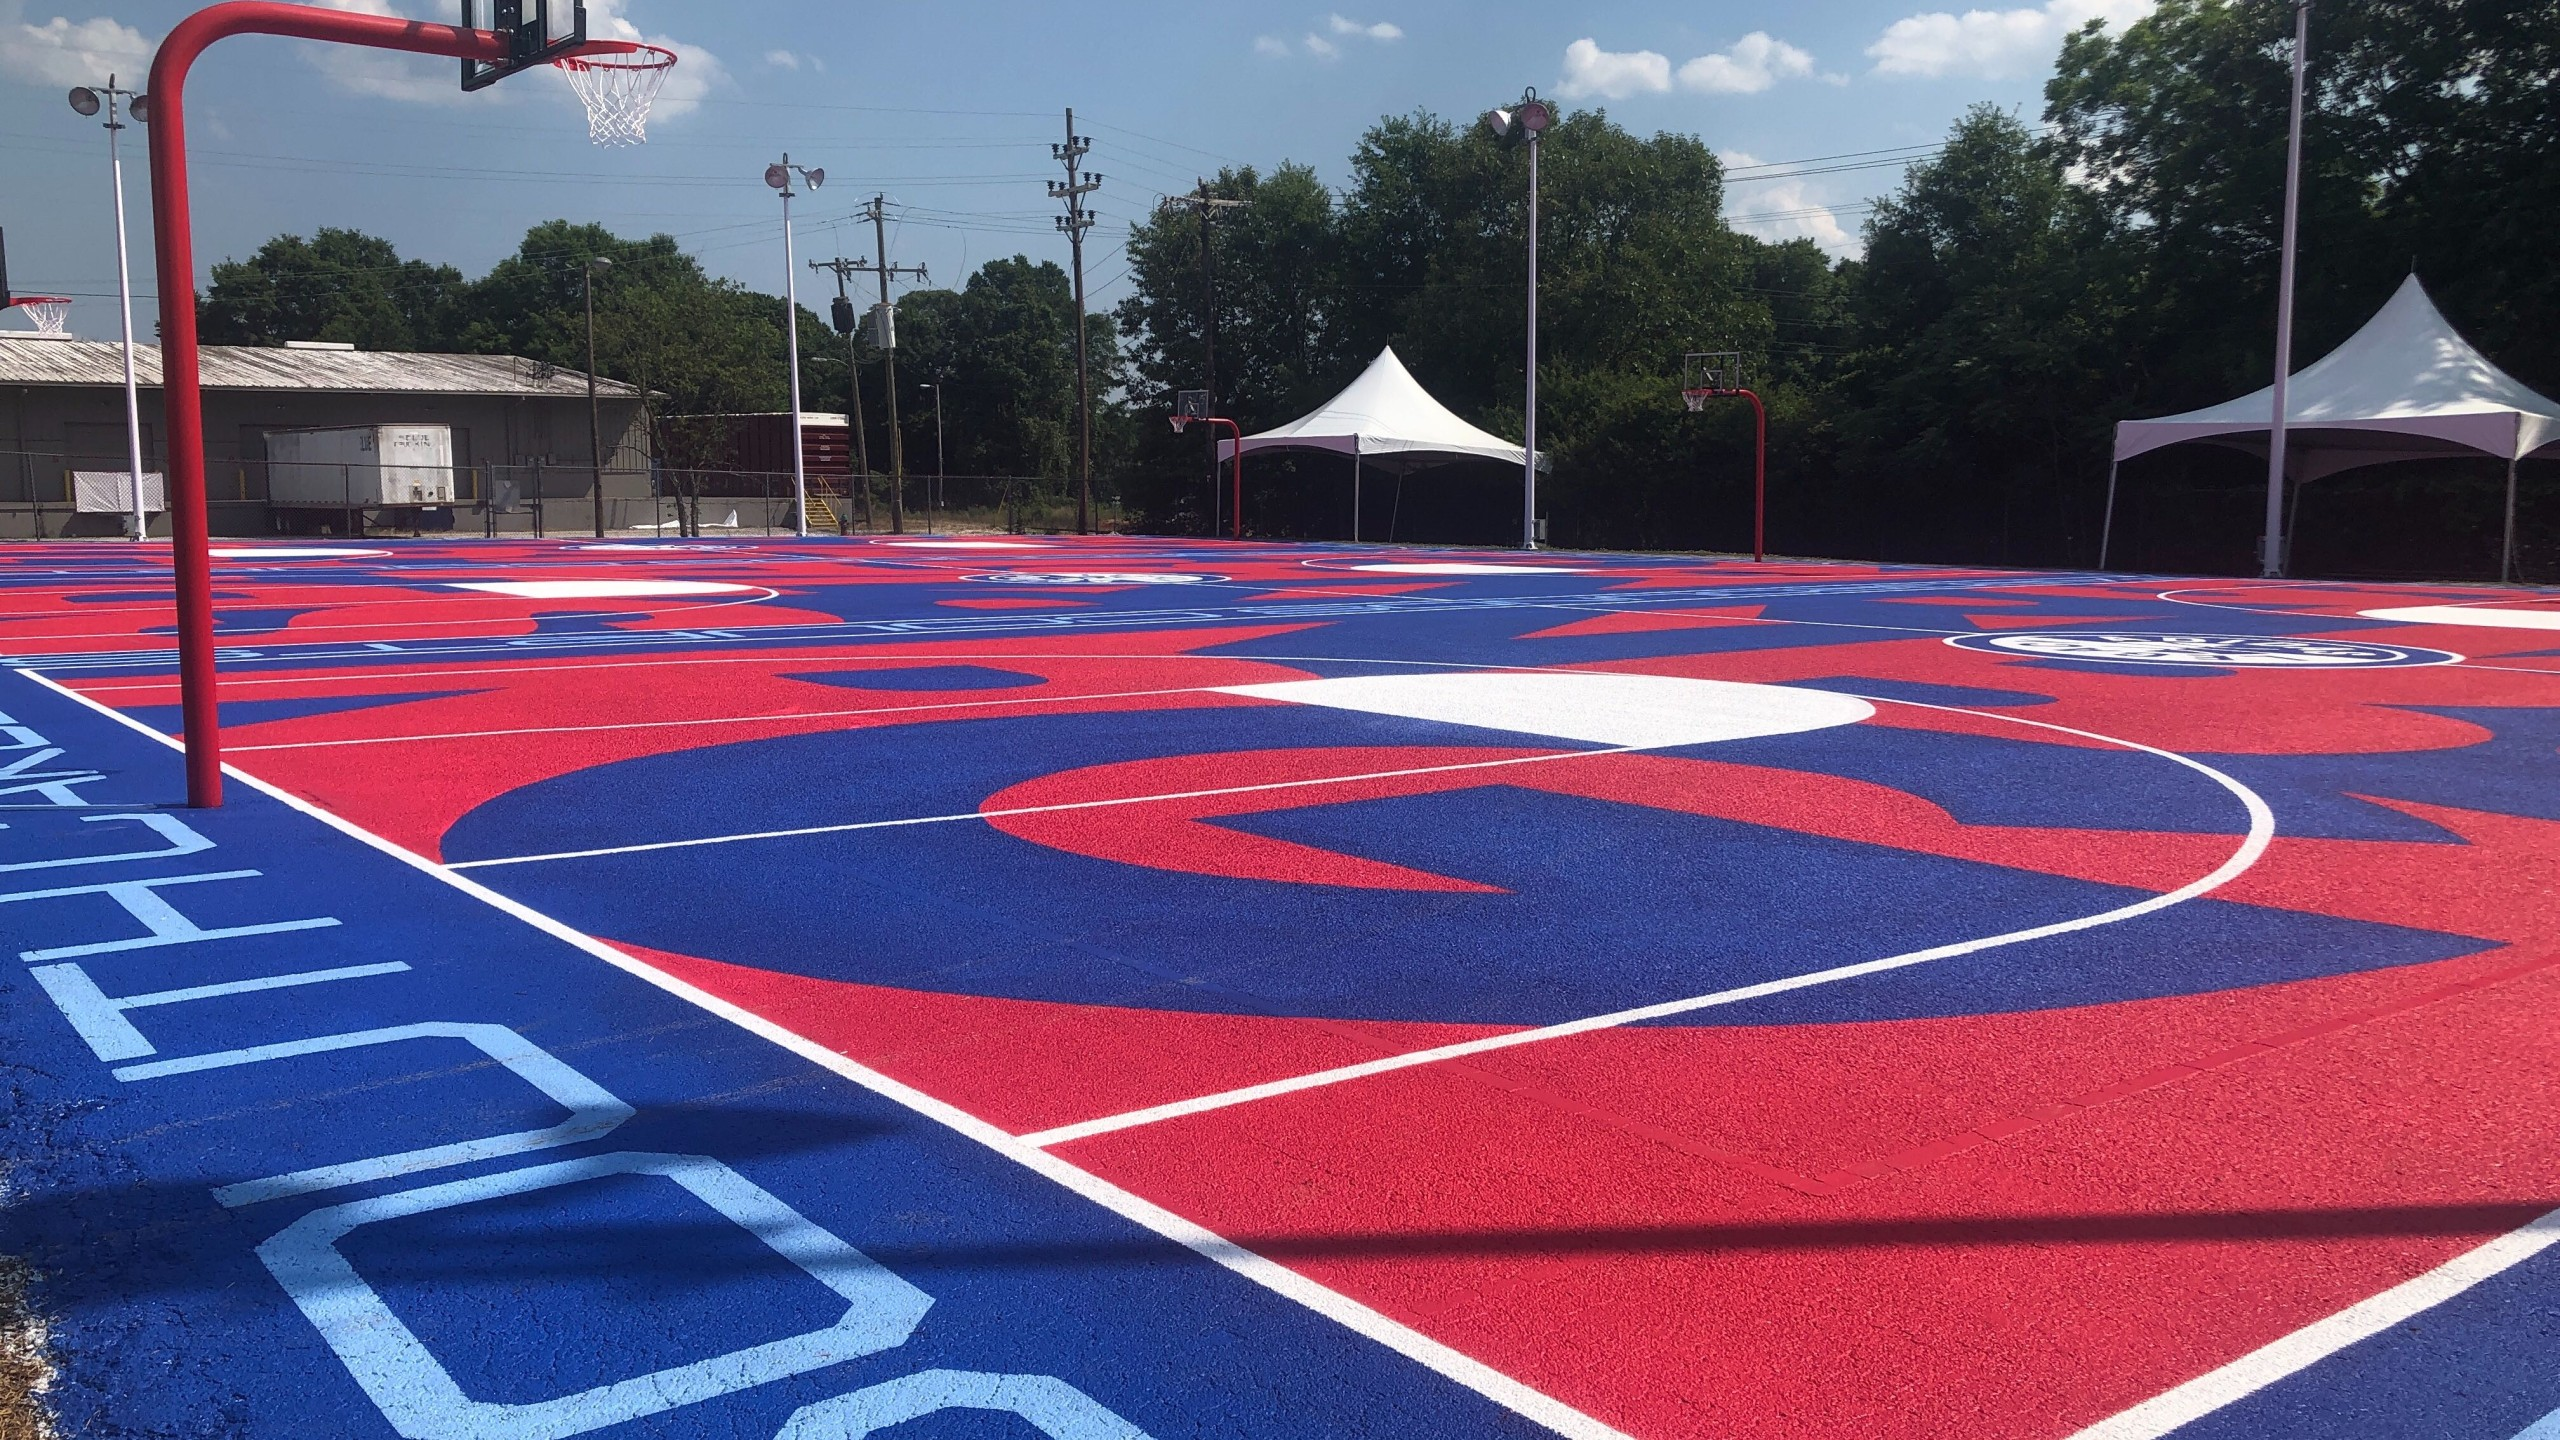 Free community event Saturday unveils revived basketball